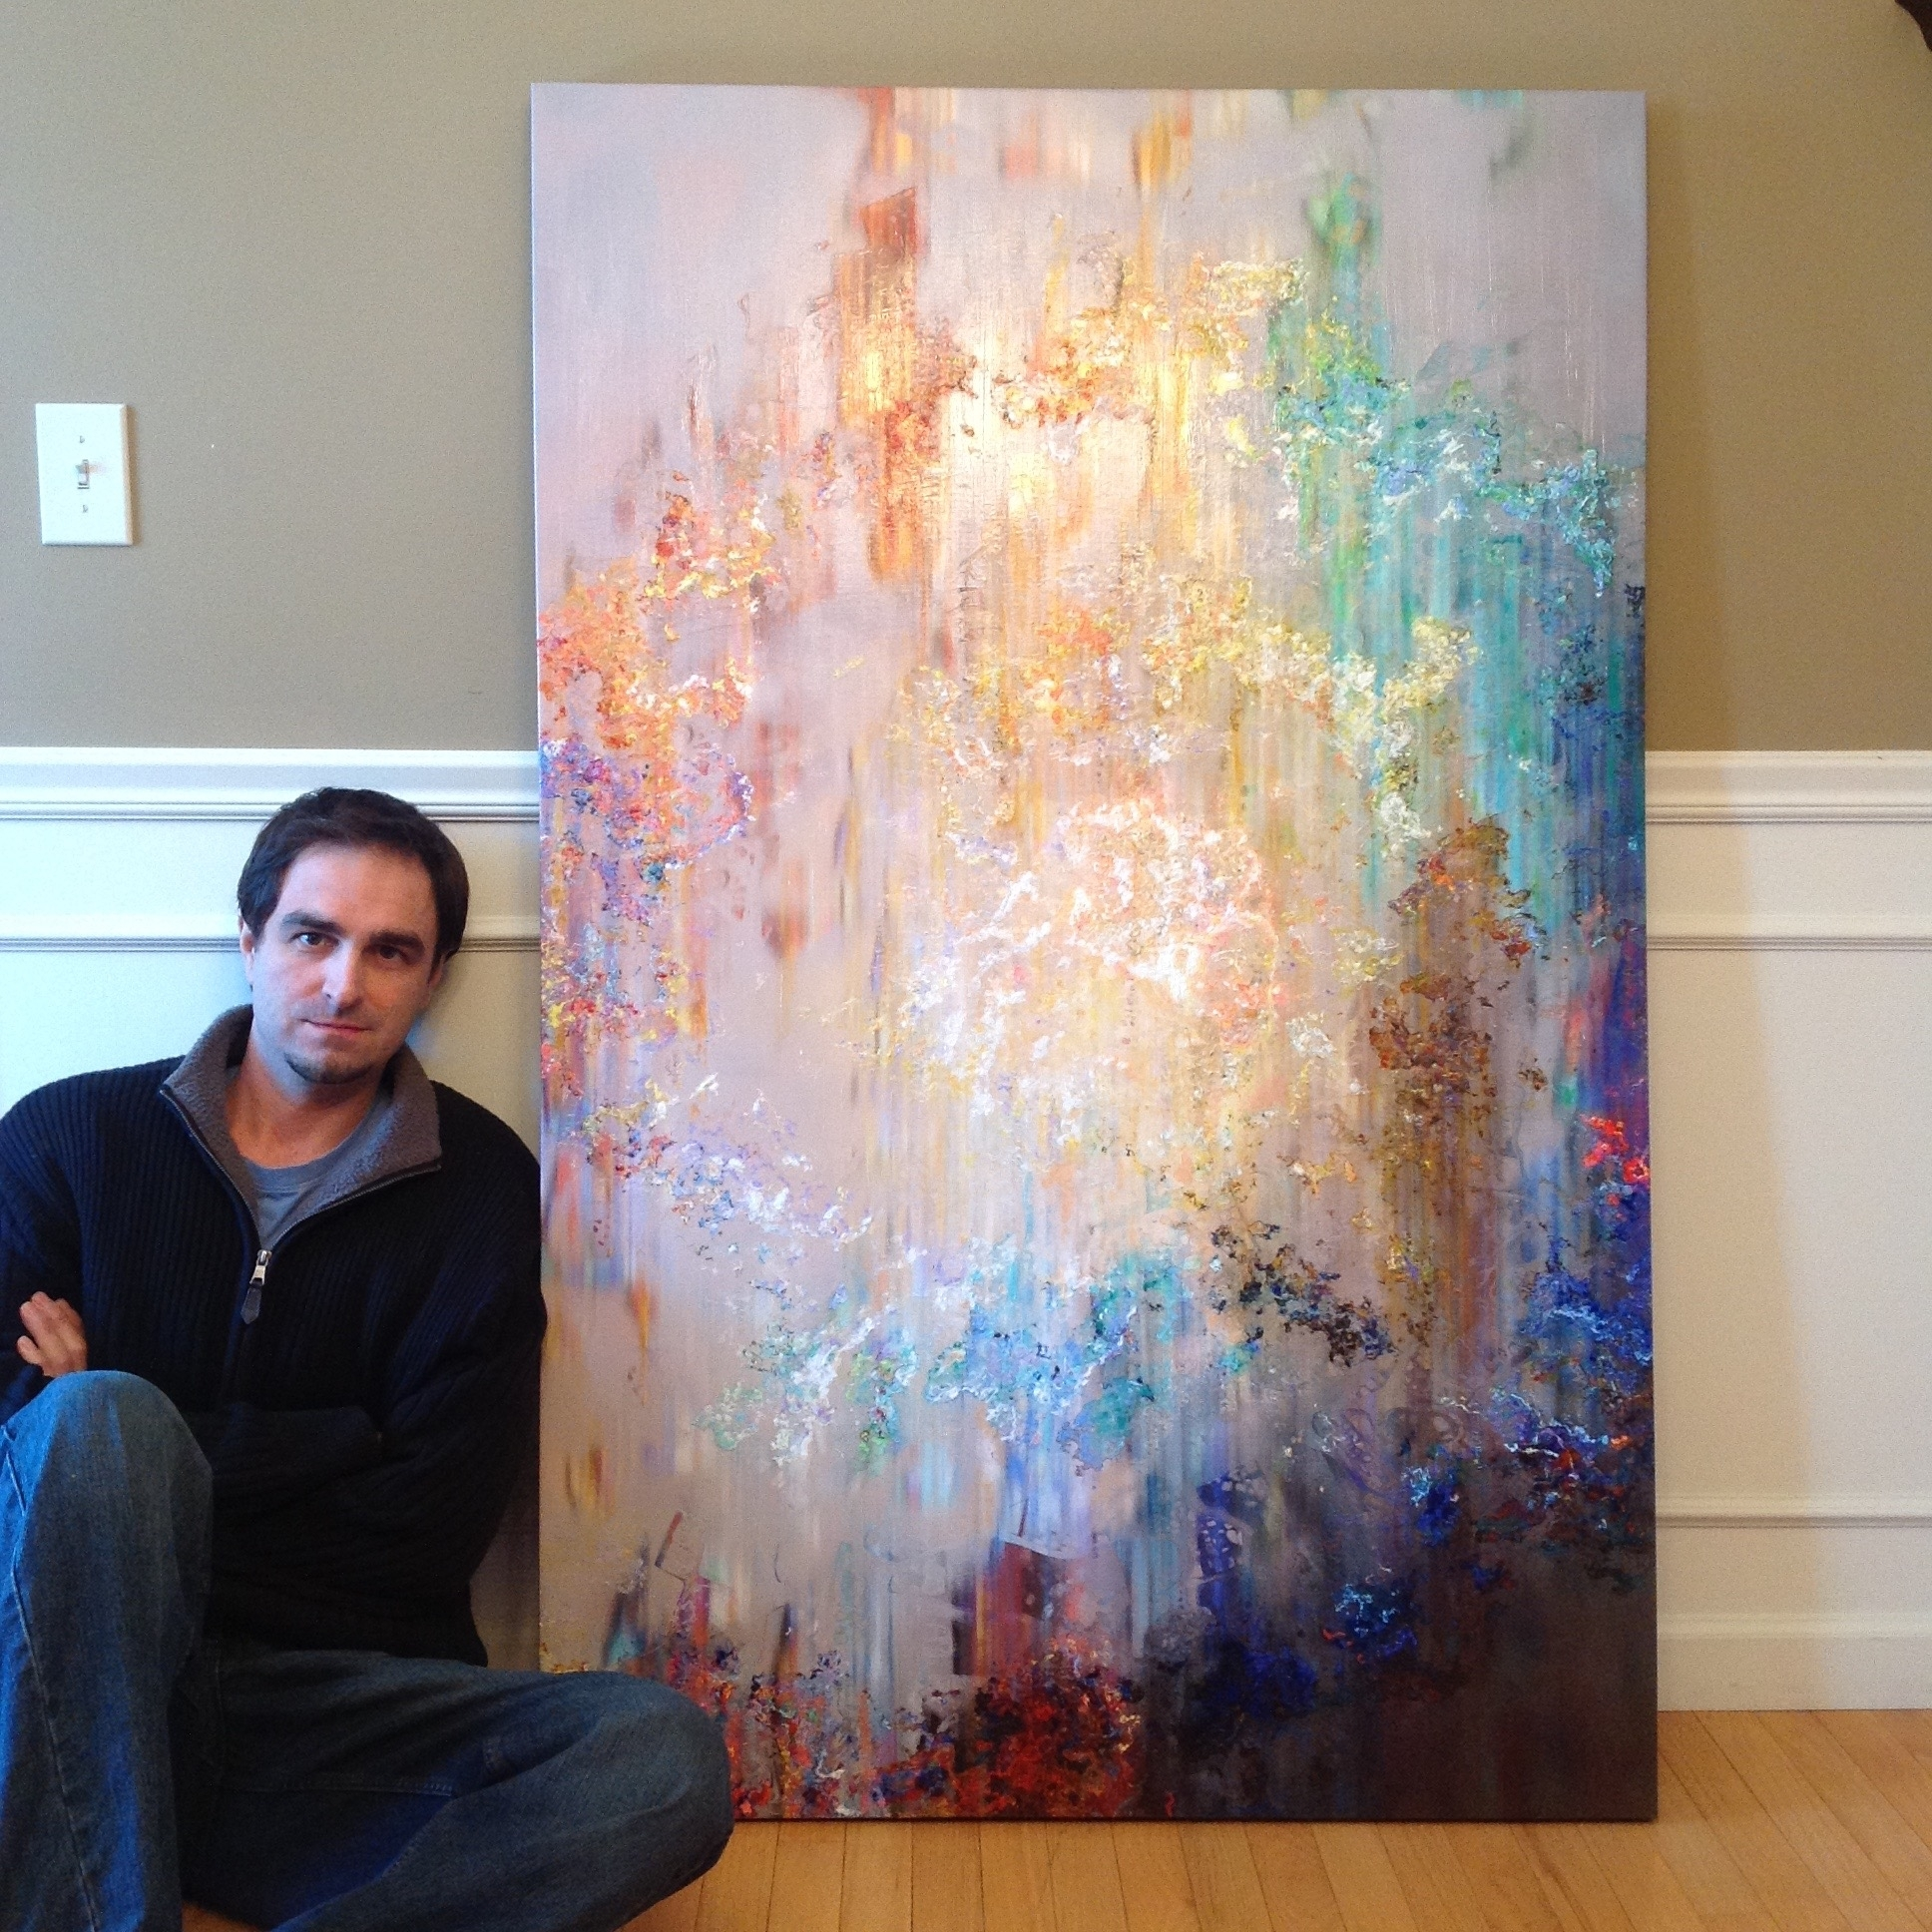 Preferred Cianelli Studios Blog – Abstract Art Throughout Giant Abstract Wall Art (View 12 of 15)